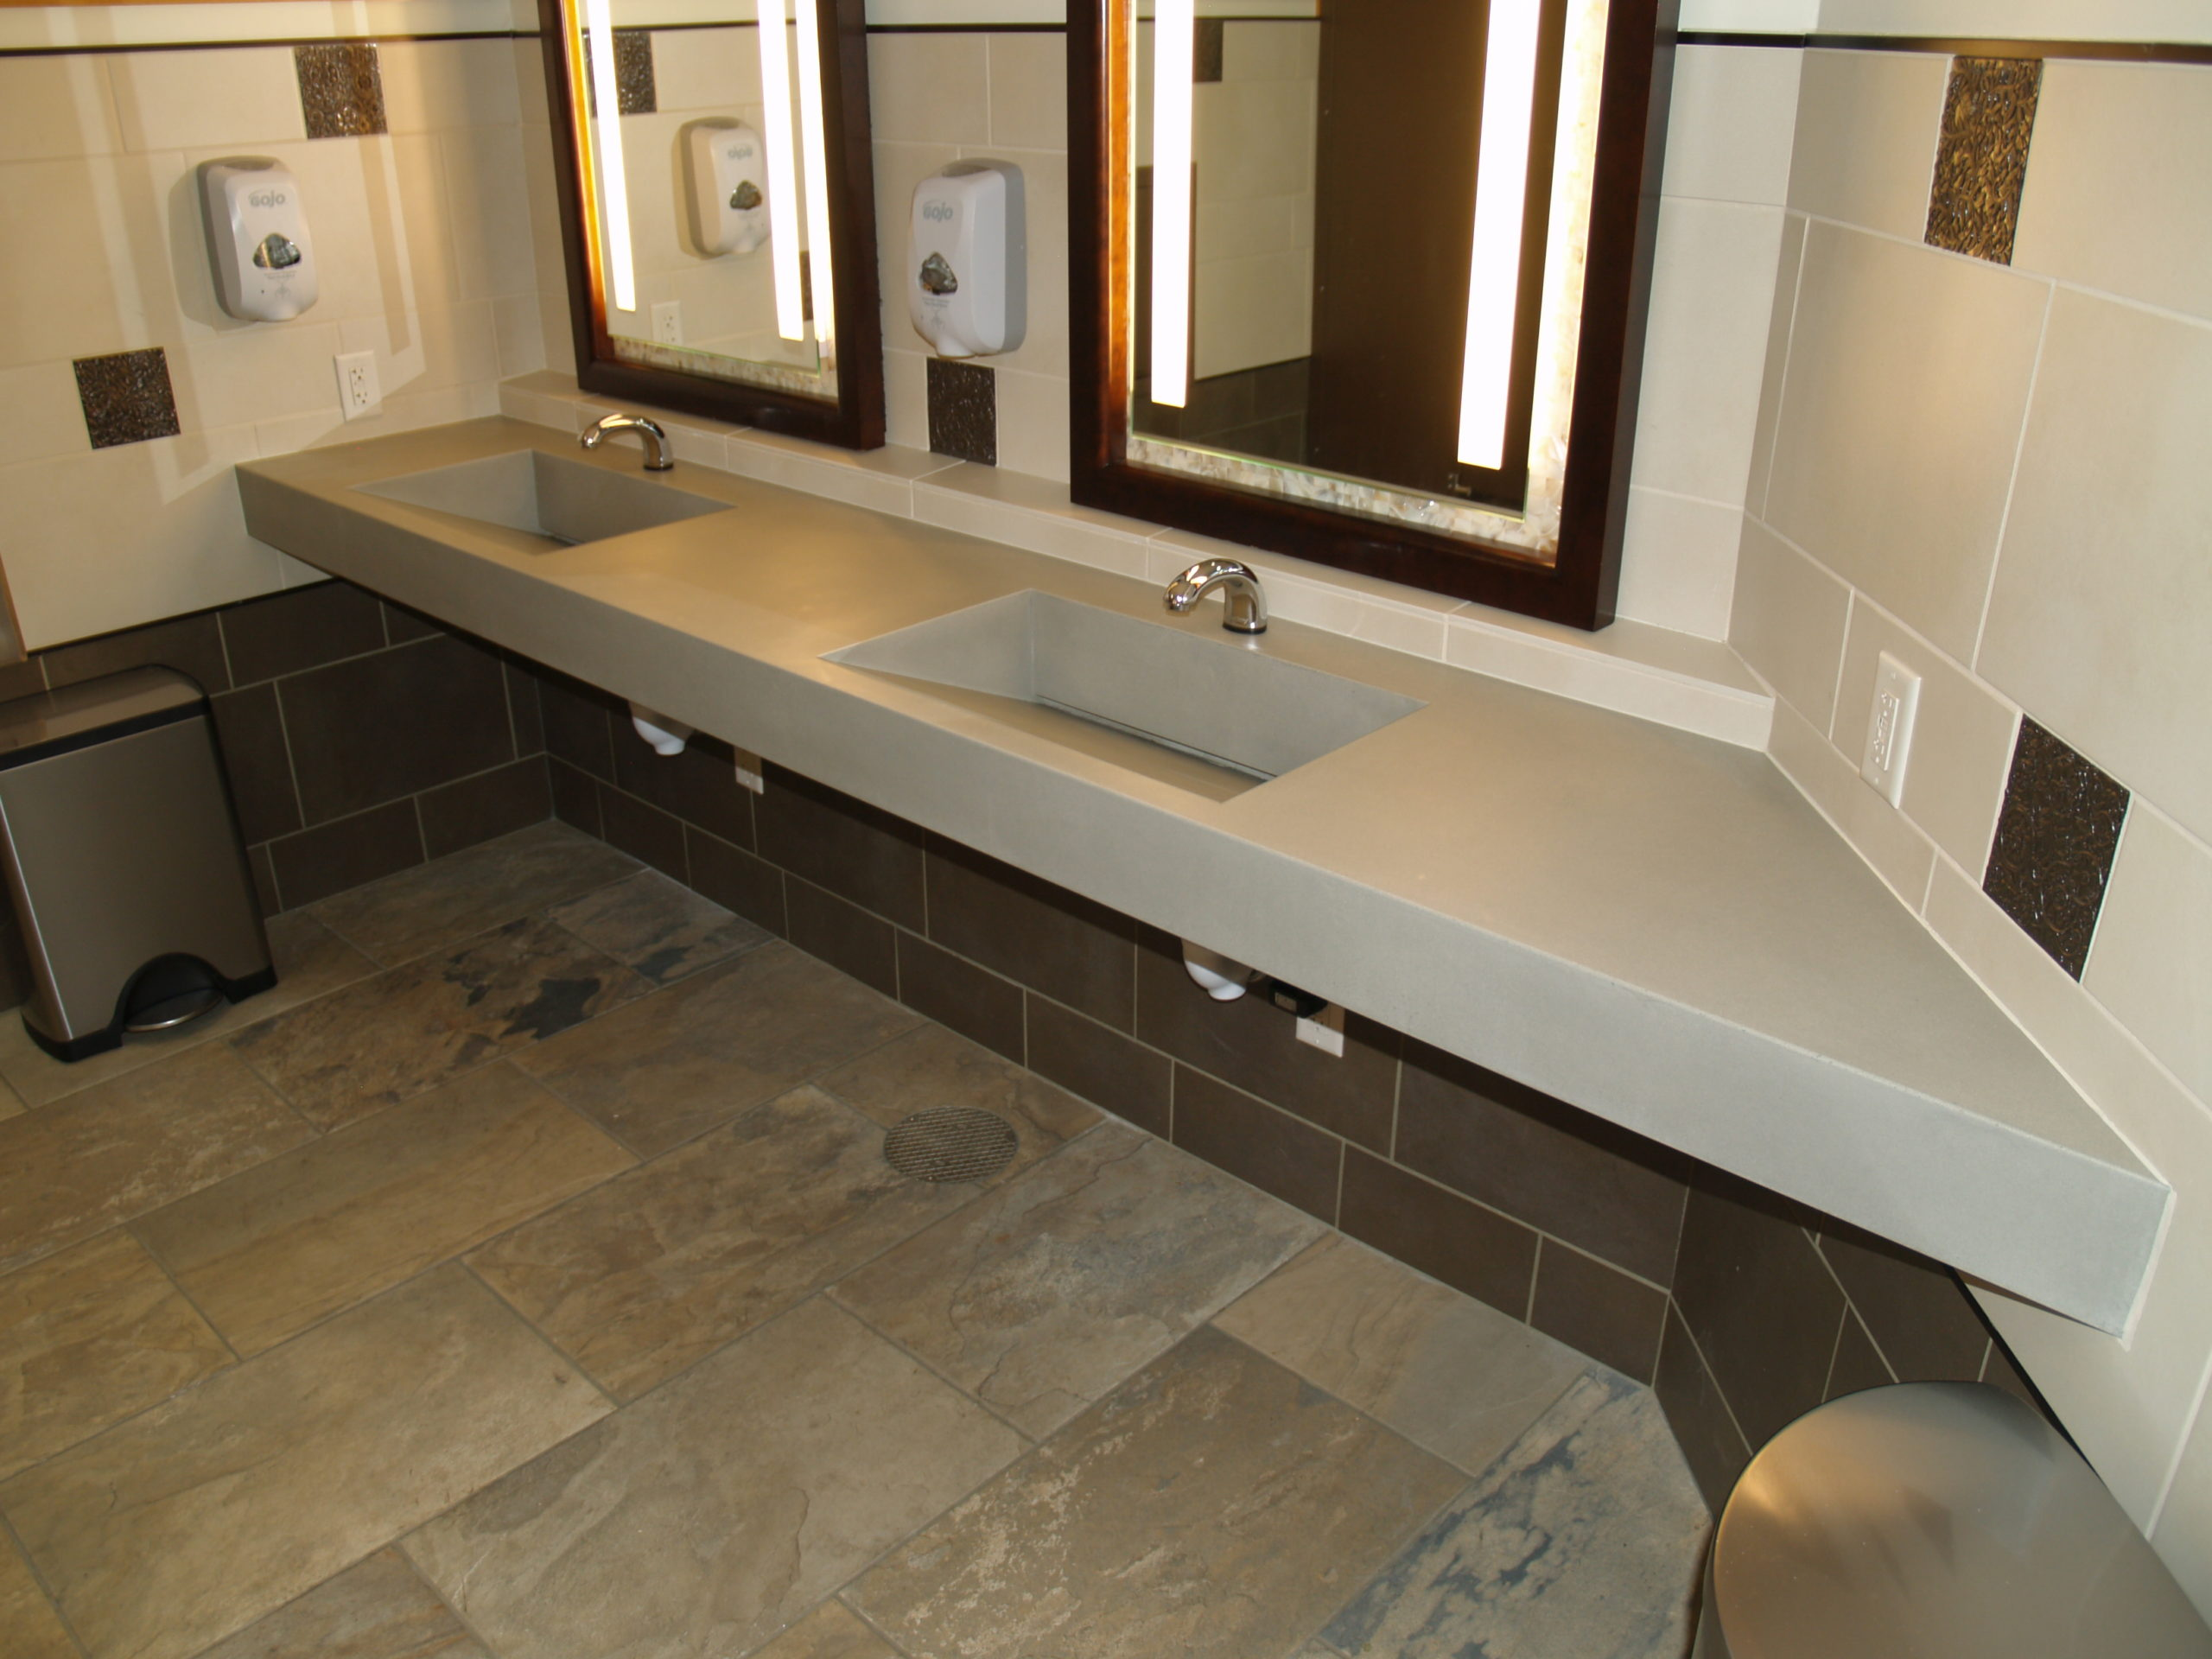 2 concrete sinks in a bathroom